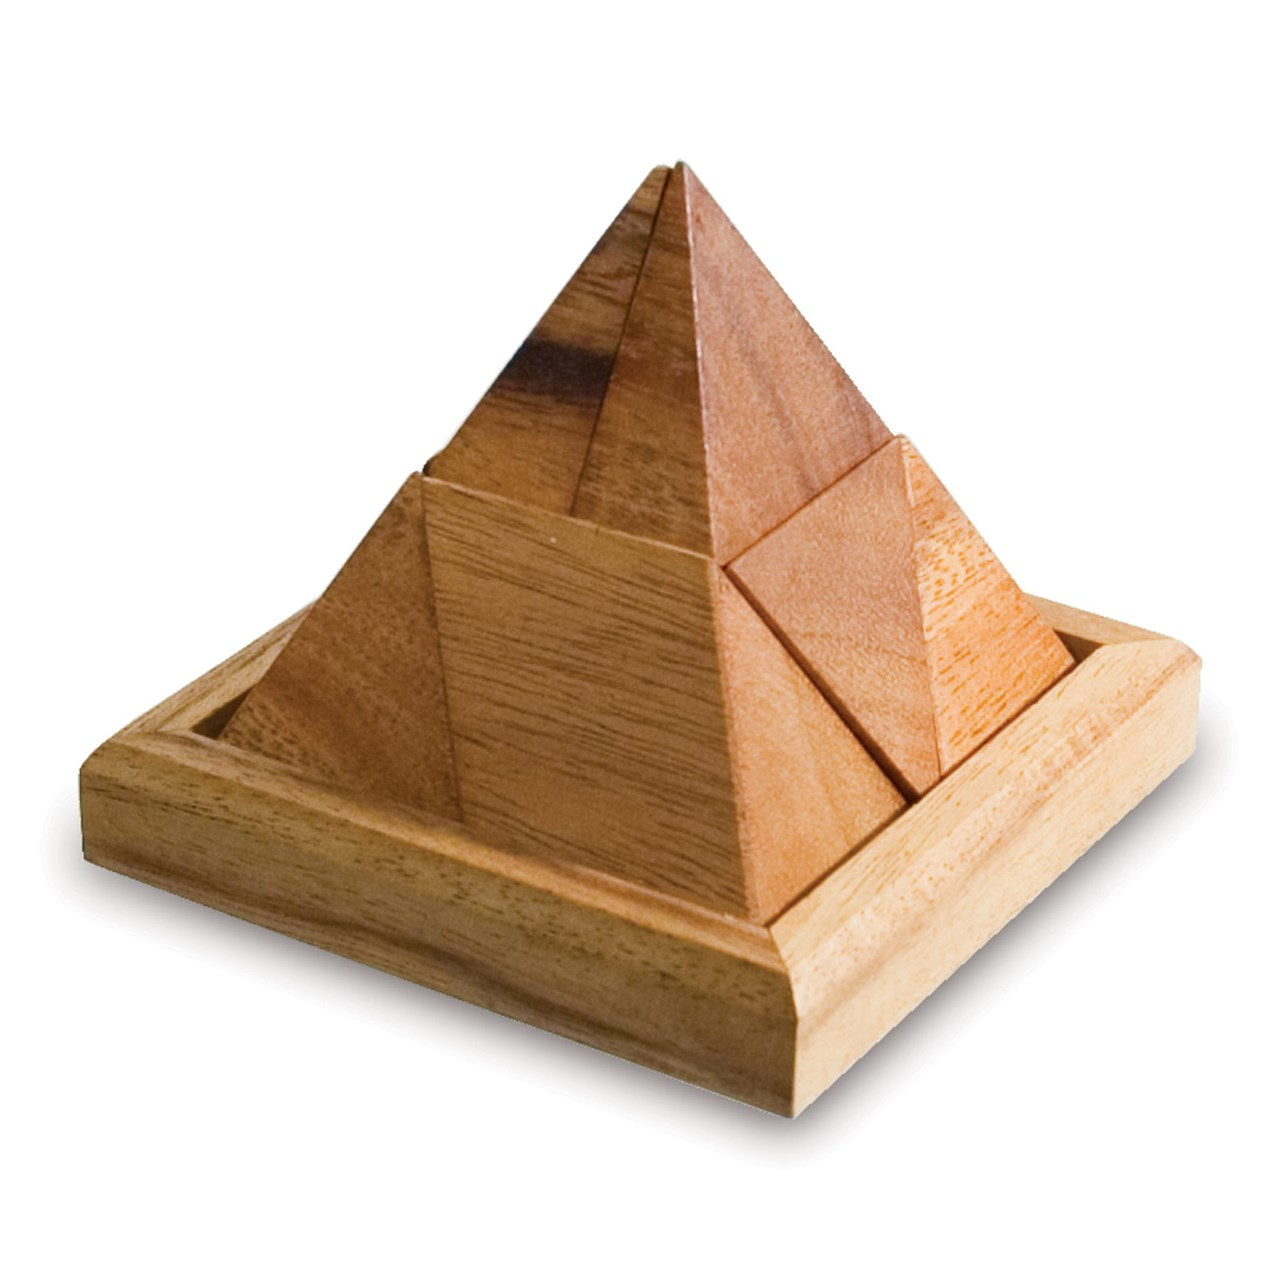 MaxiAids | Pyramid Puzzle- Wooden Tactile Brainteaser